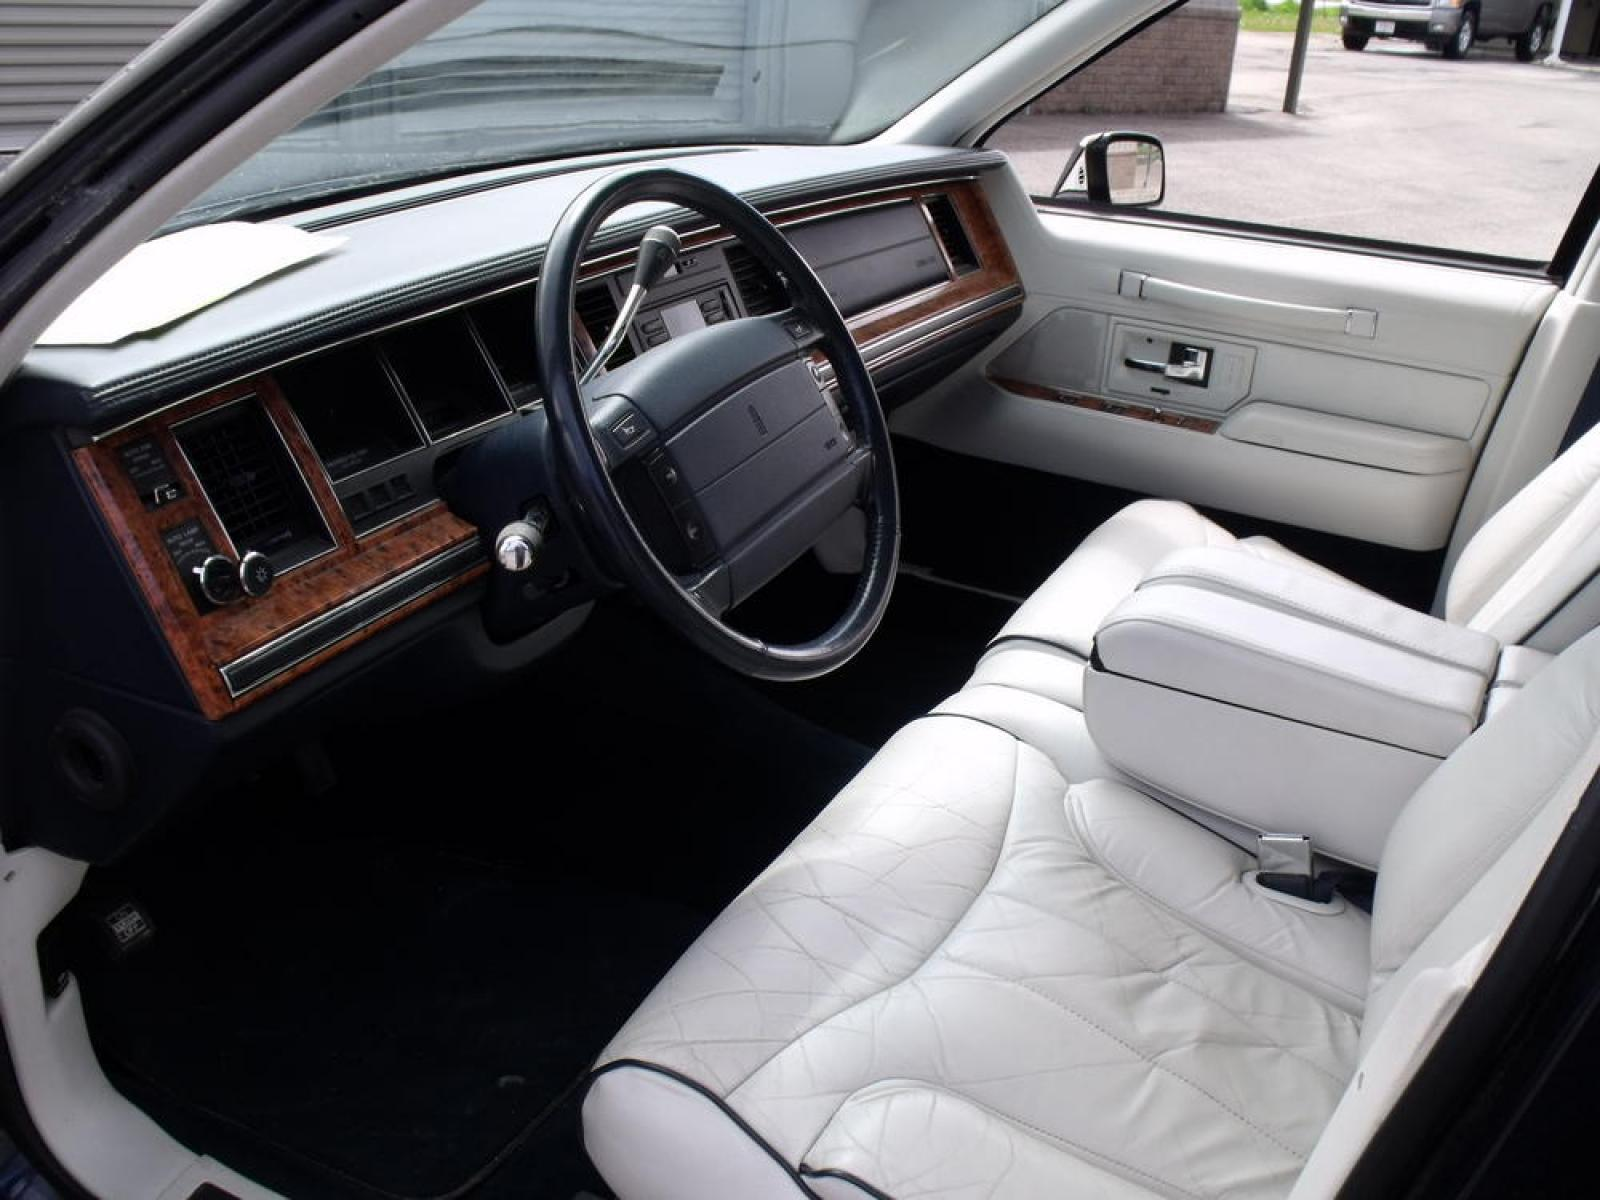 1993 Lincoln Town Car Information And Photos Zombiedrive